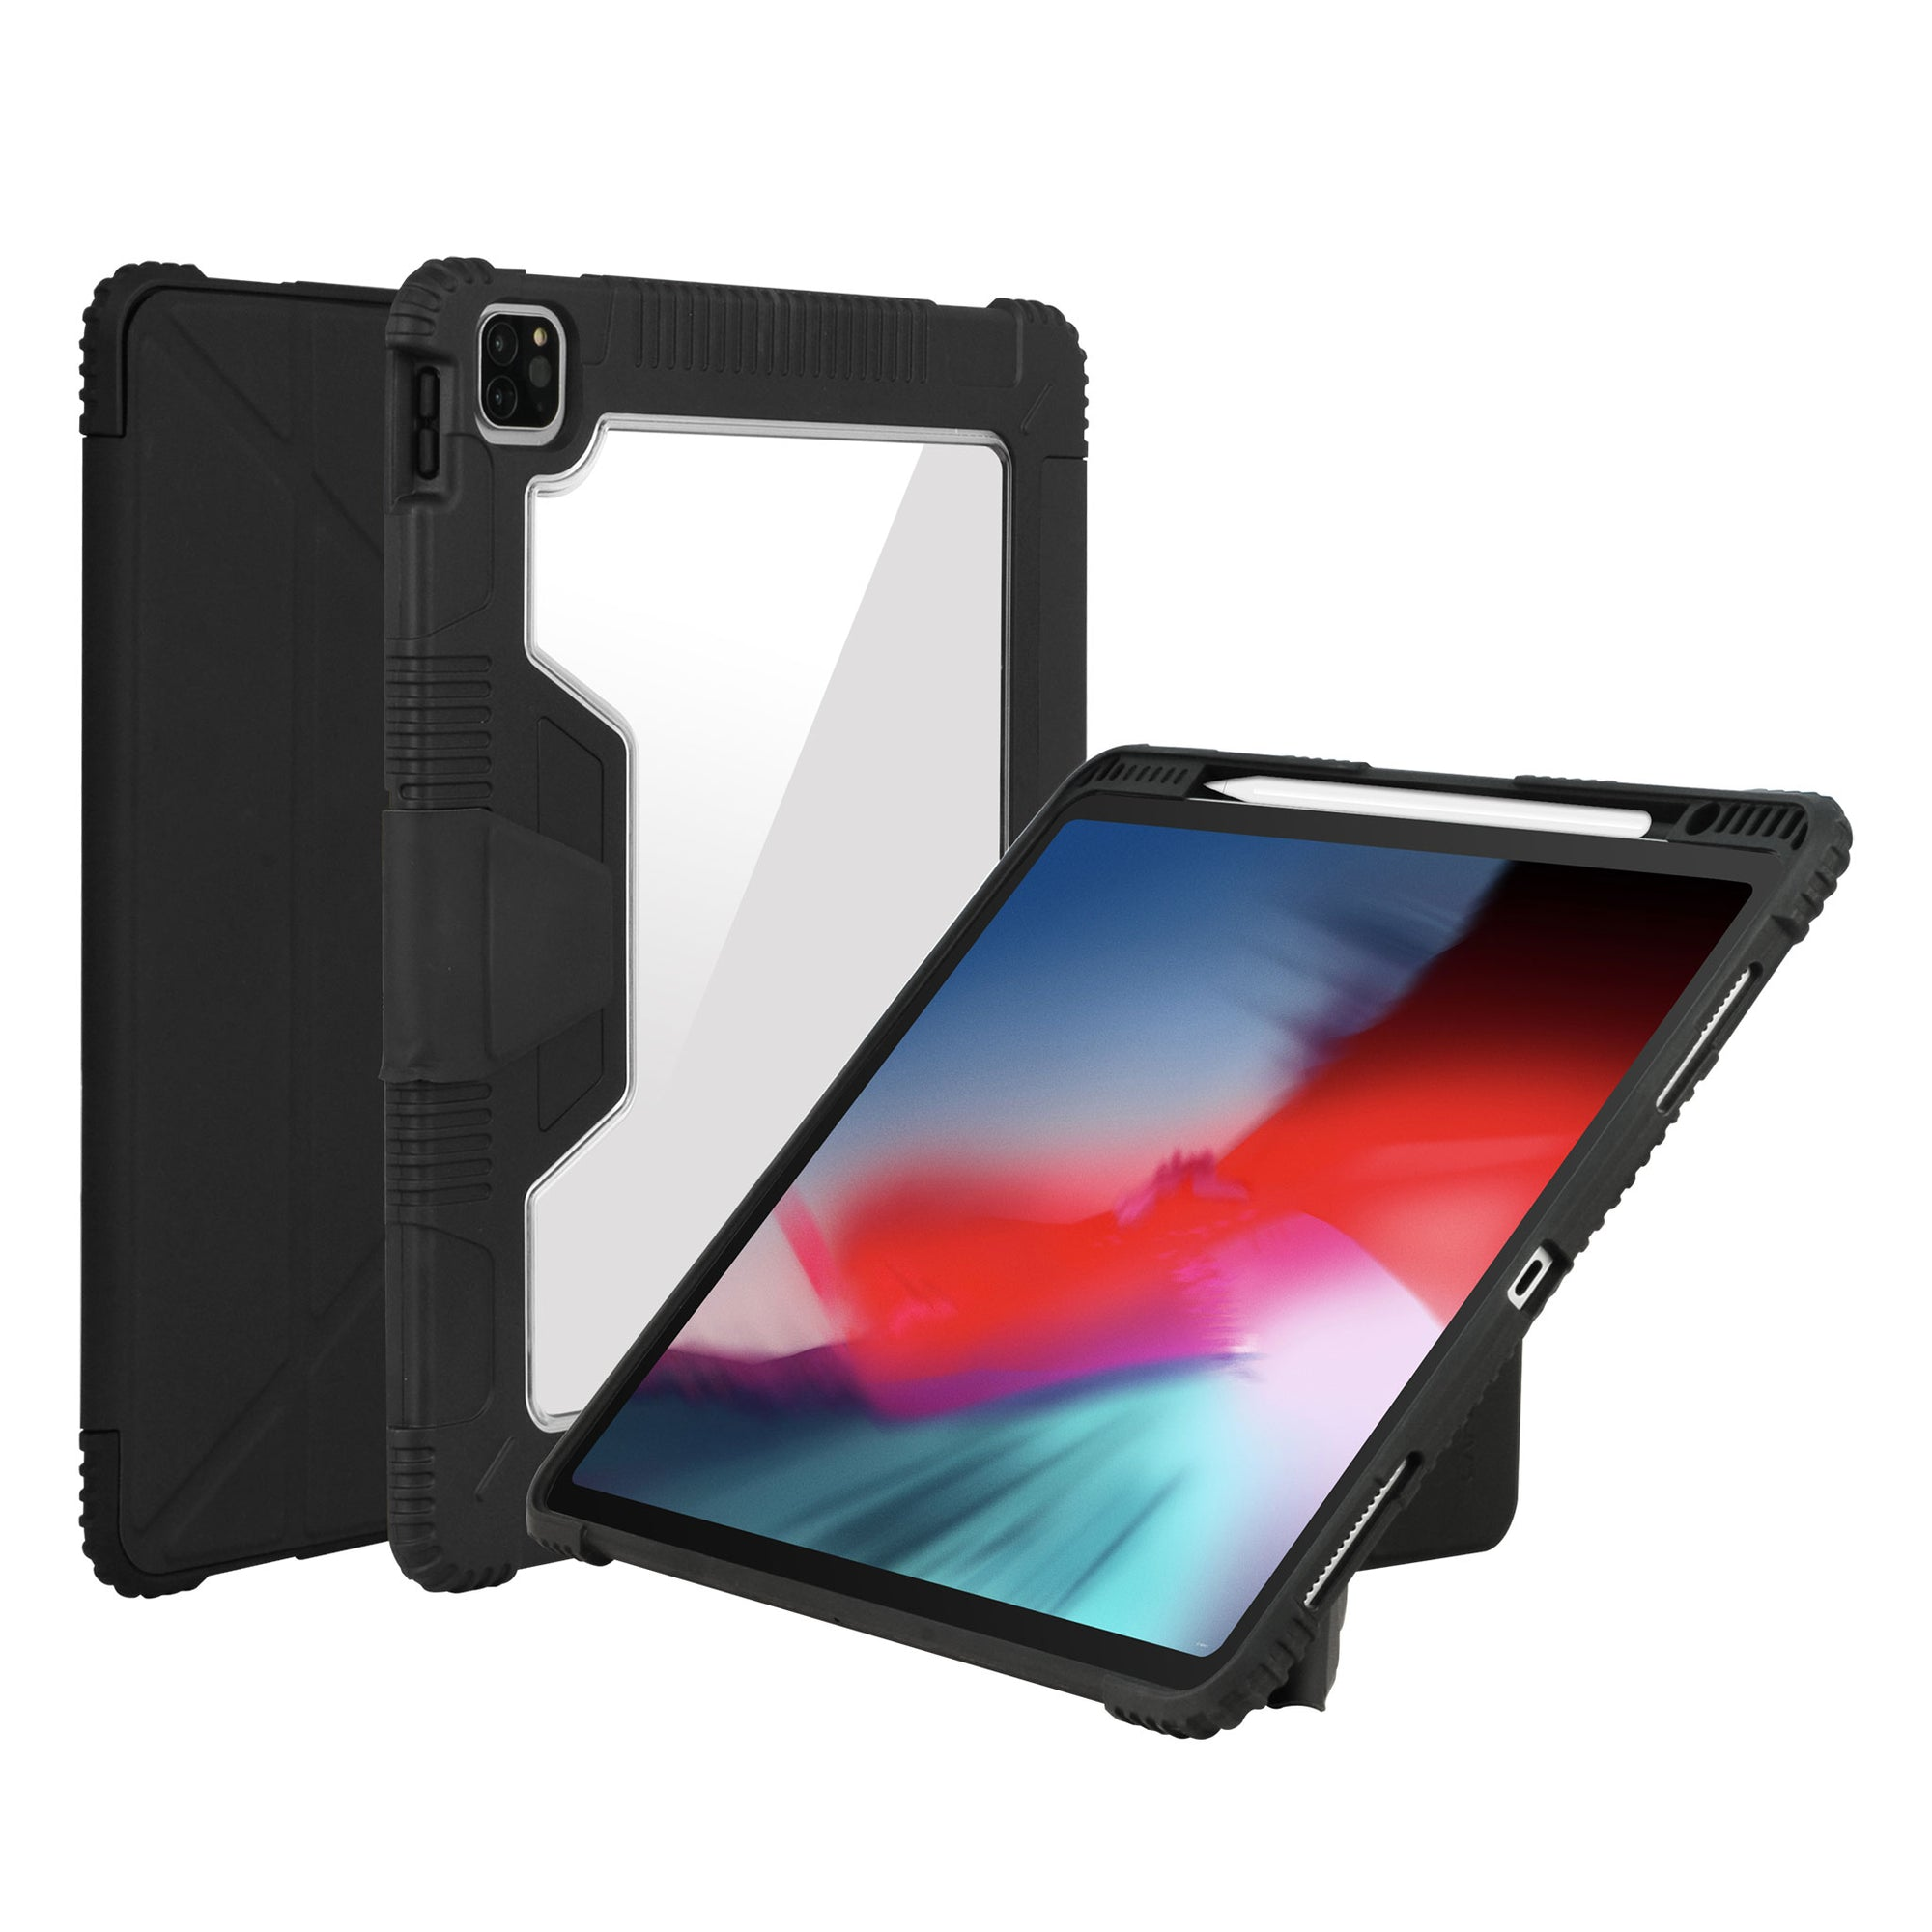 BUMPER FOLIO Flip Case for iPad Pro 11-inch (2020 Early)